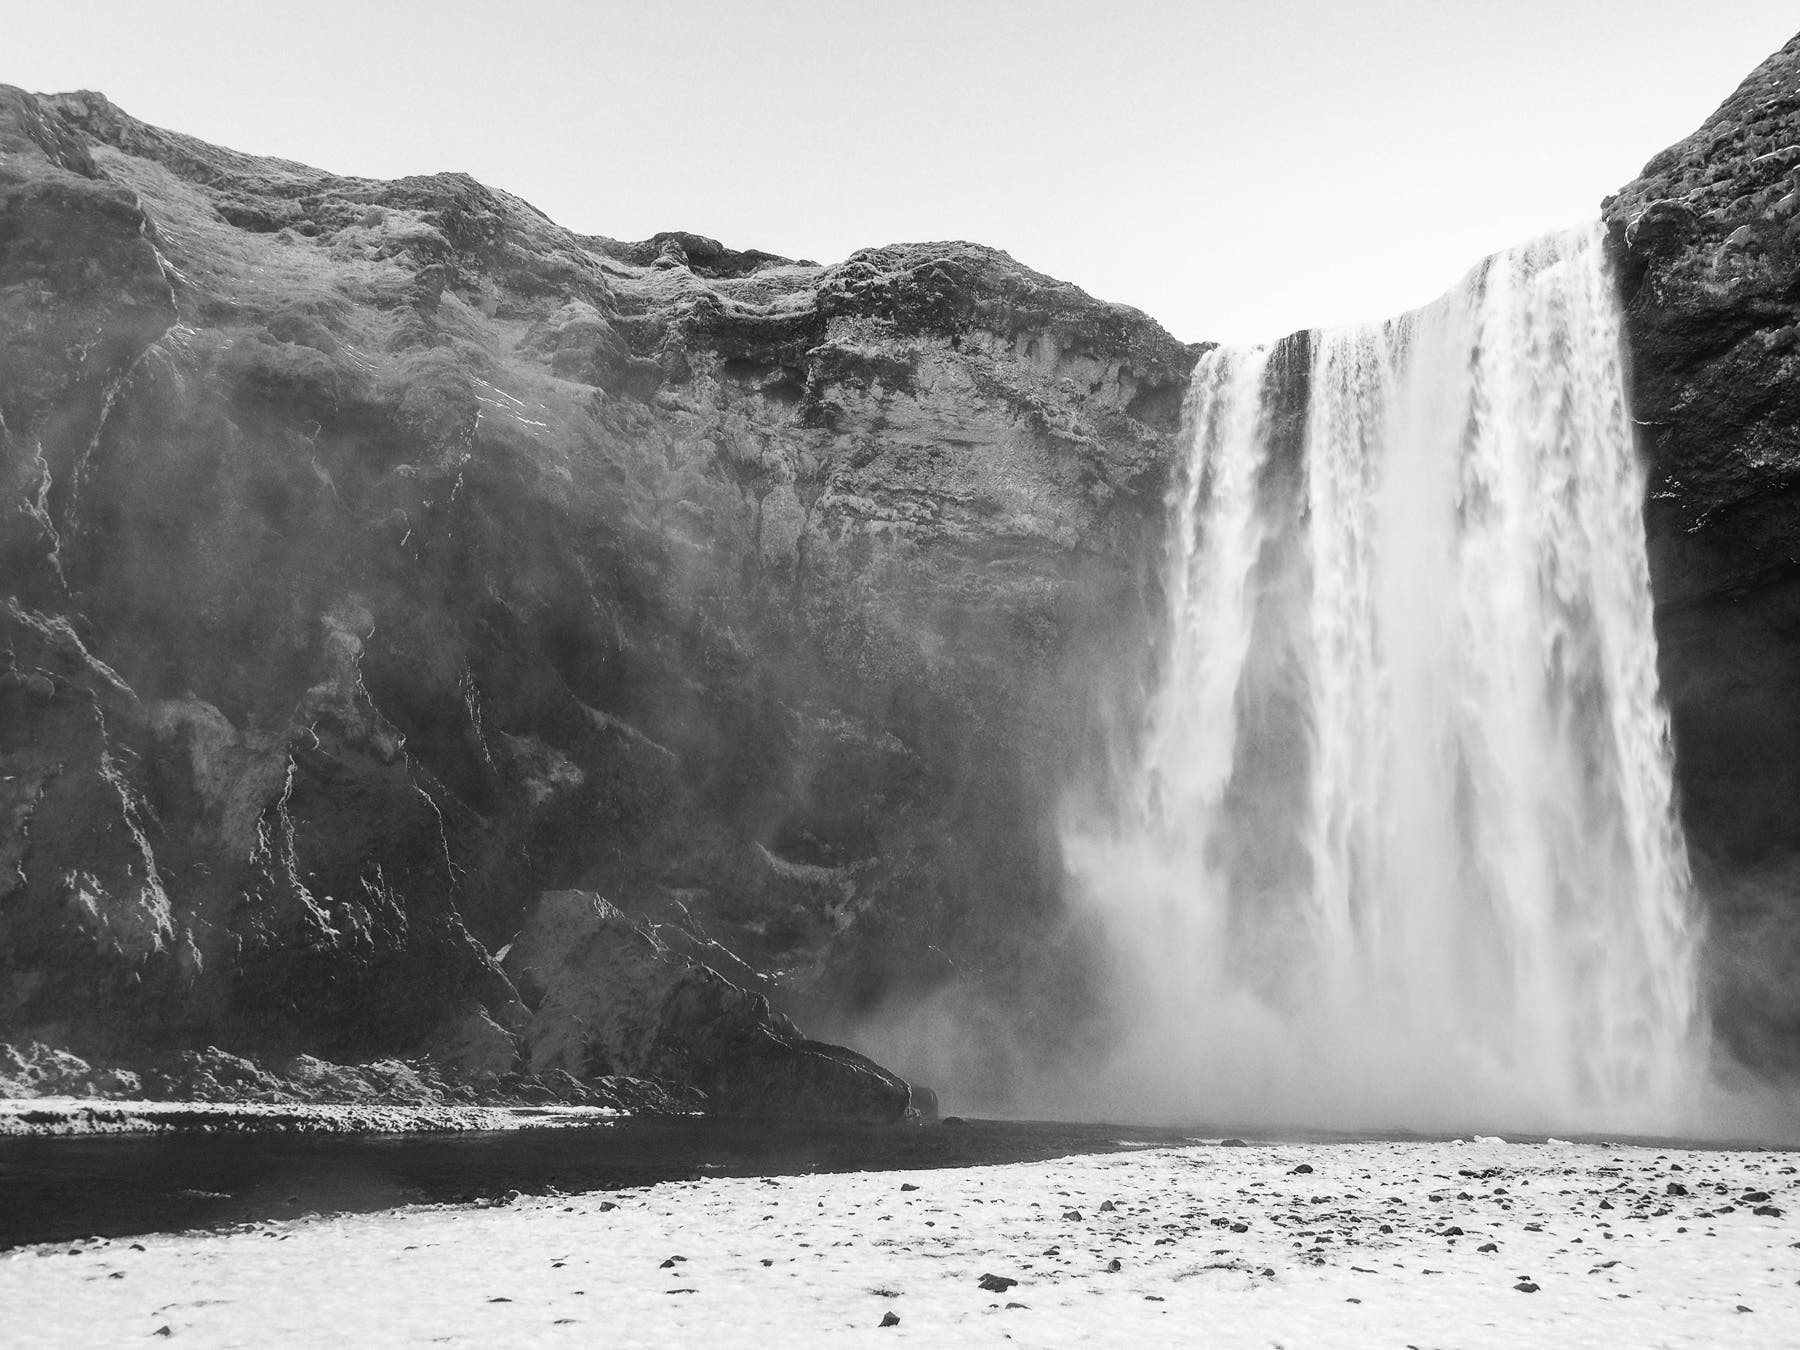 Maciej Kalkosinski on Photographing Iceland's Landscapes in Black and White